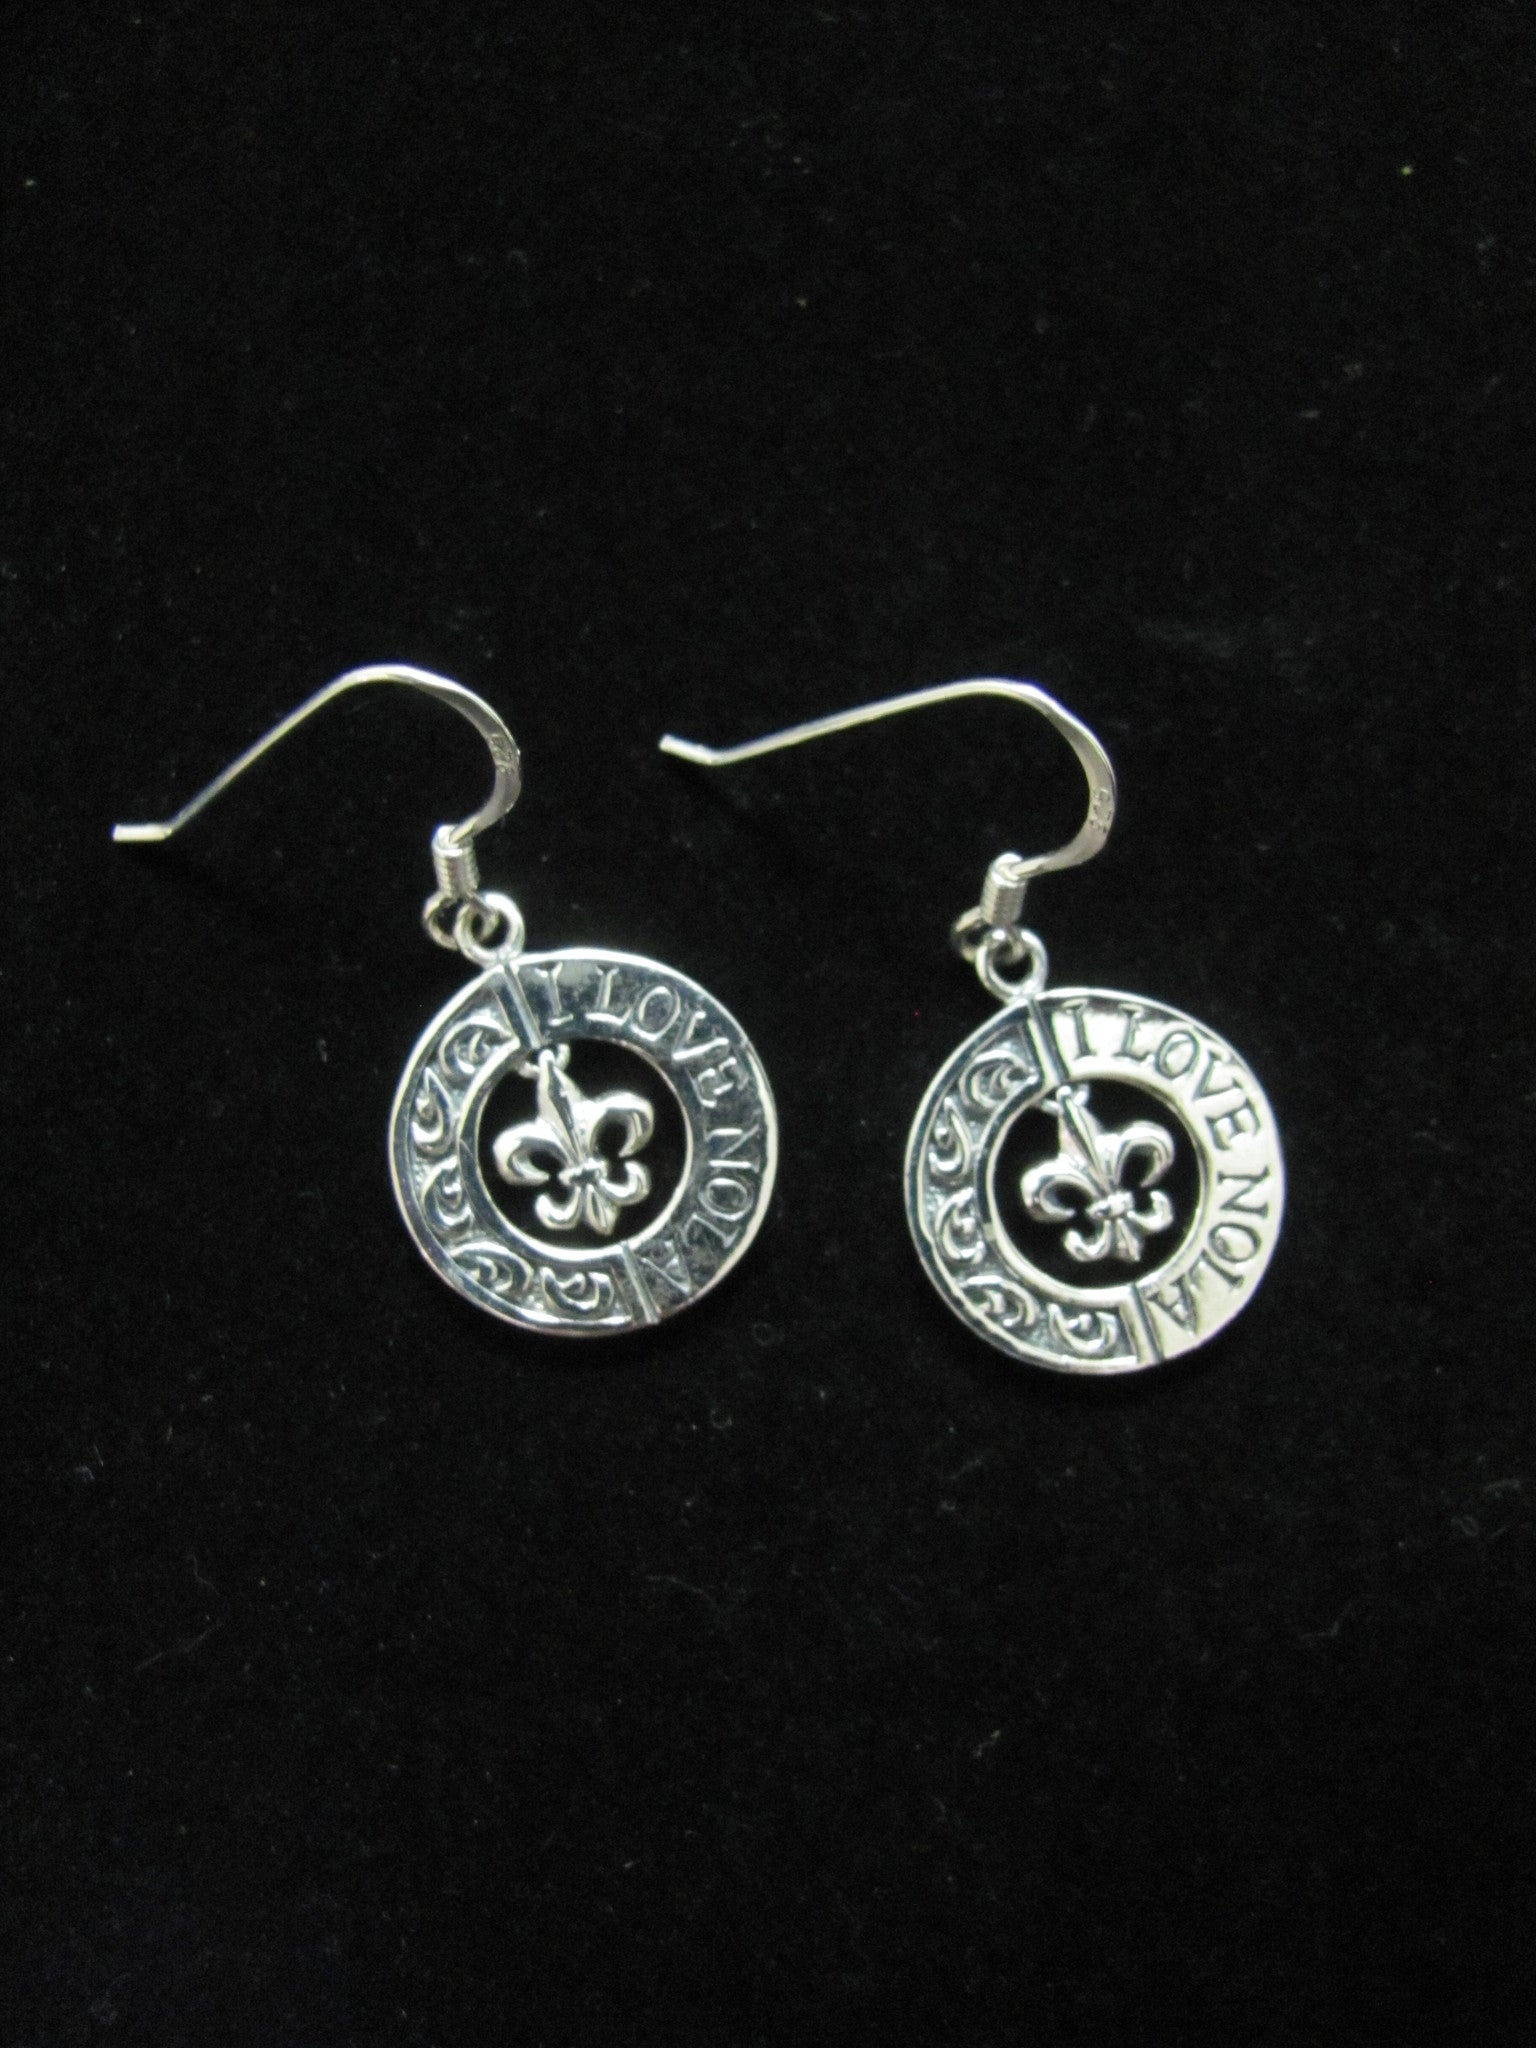 """I LOVE NOLA"" earrings"